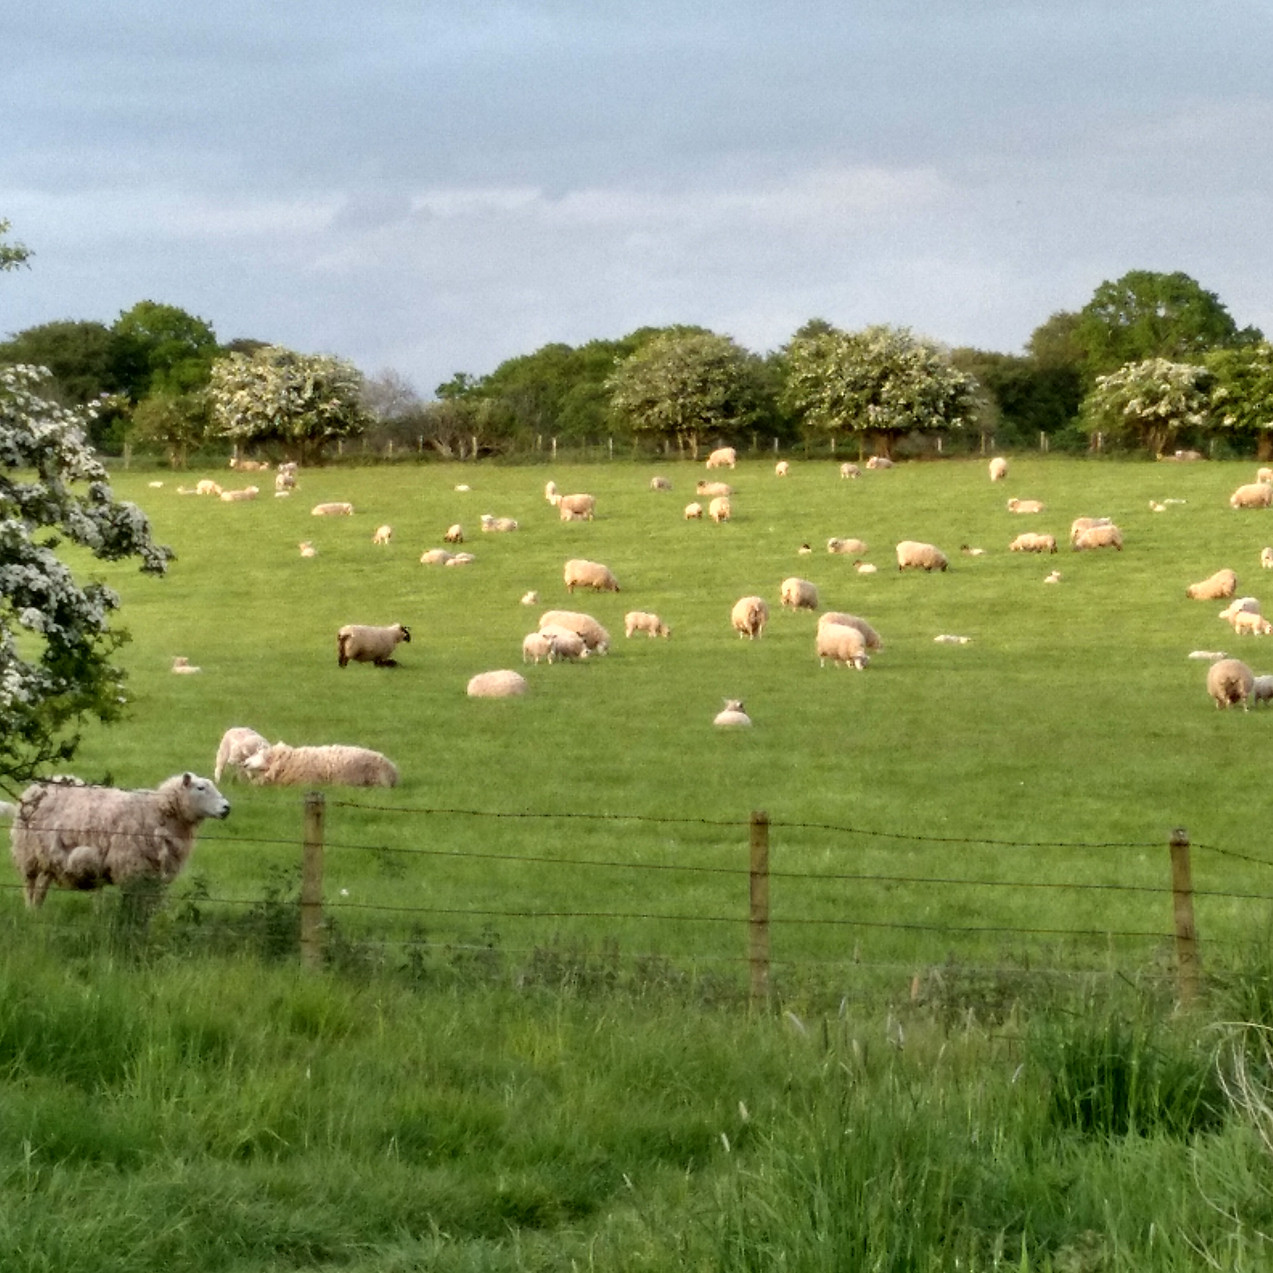 Sheep and lambs back on the land